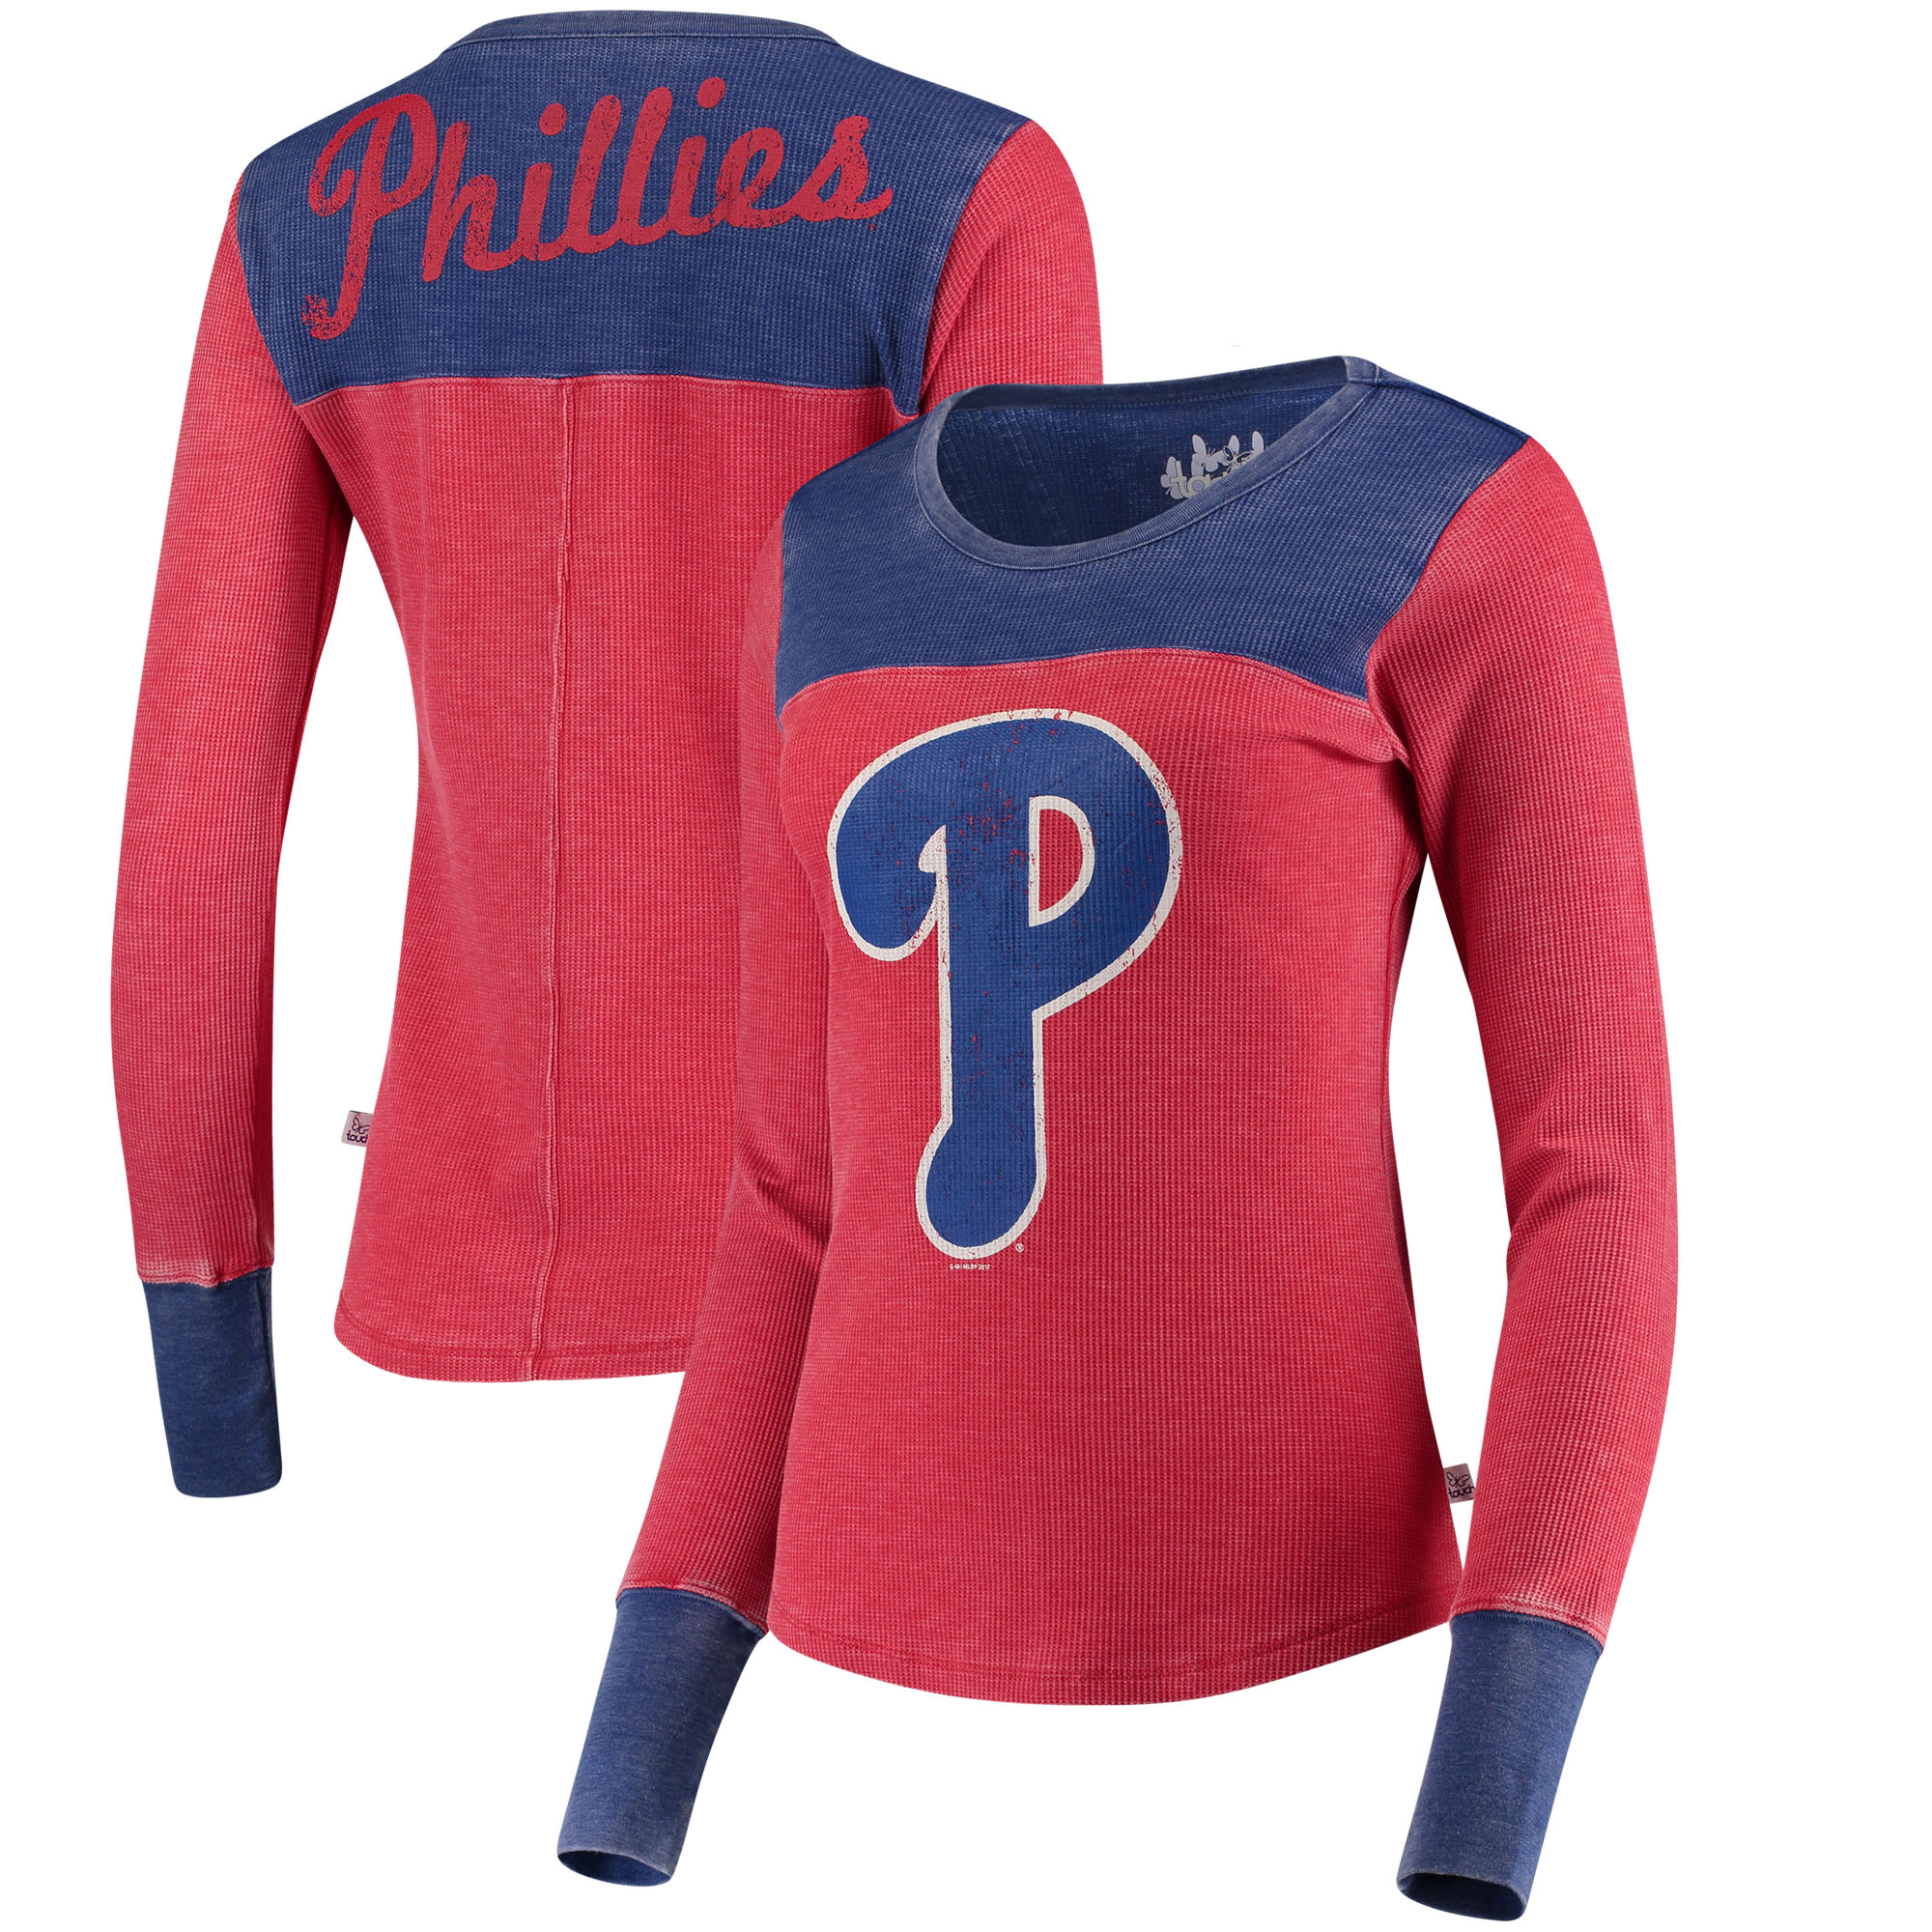 Philadelphia Phillies Touch by Alyssa Milano Women's Blindside Long Sleeve Thermal T-Shirt - Red/Royal